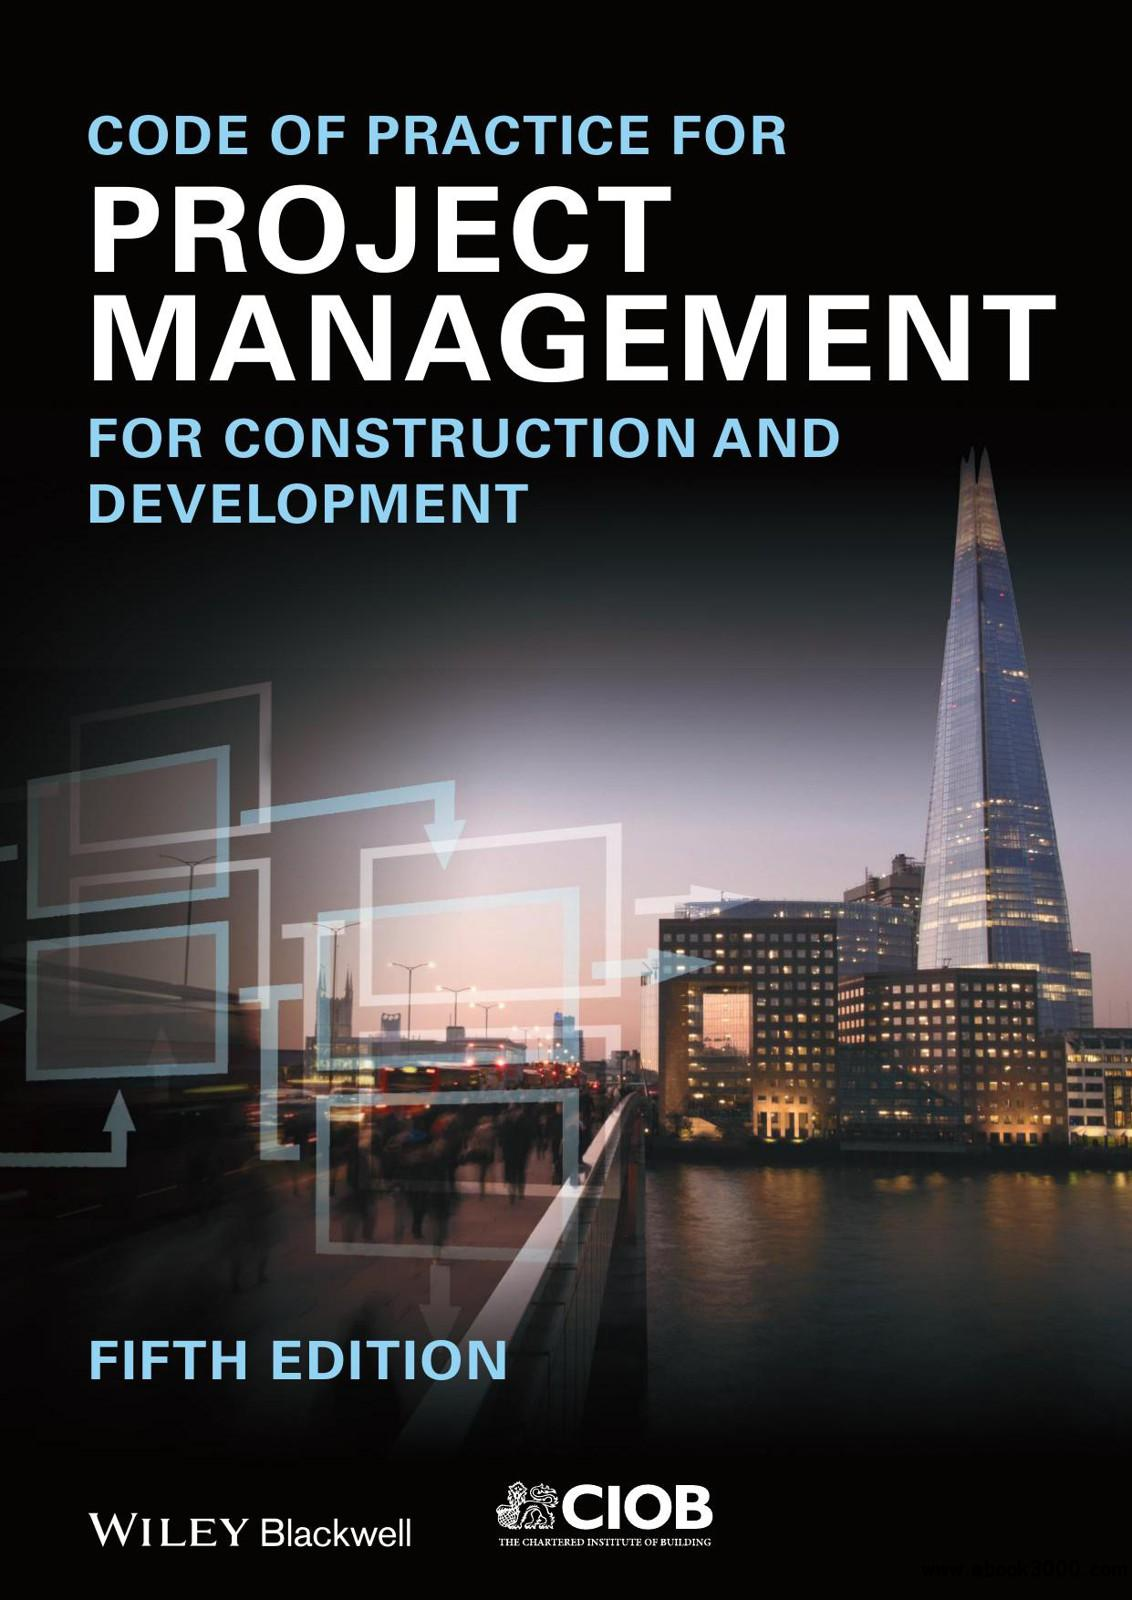 Code of Practice for Project Management for Construction and Development (5th edition) free download